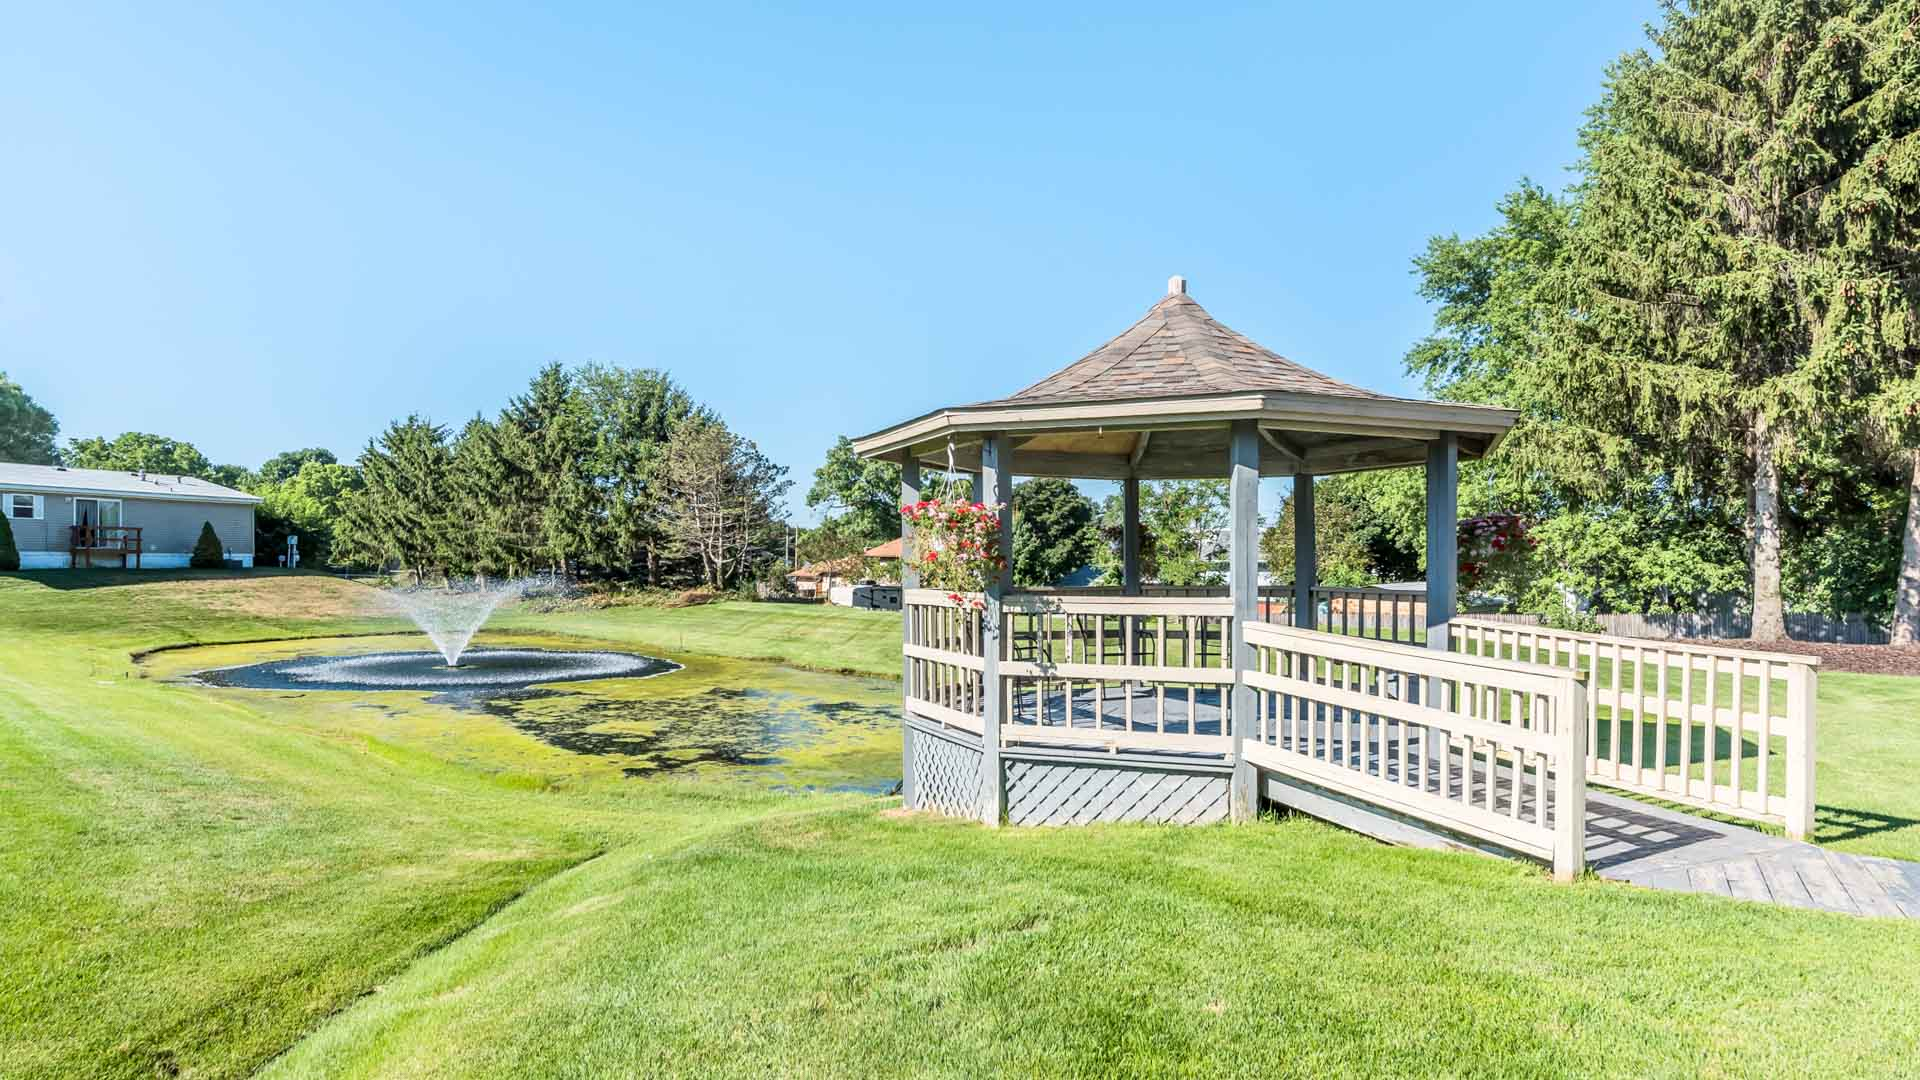 Cider Mill Village Manufactured Homes Community Pond and Gazebo in Middleville, MI